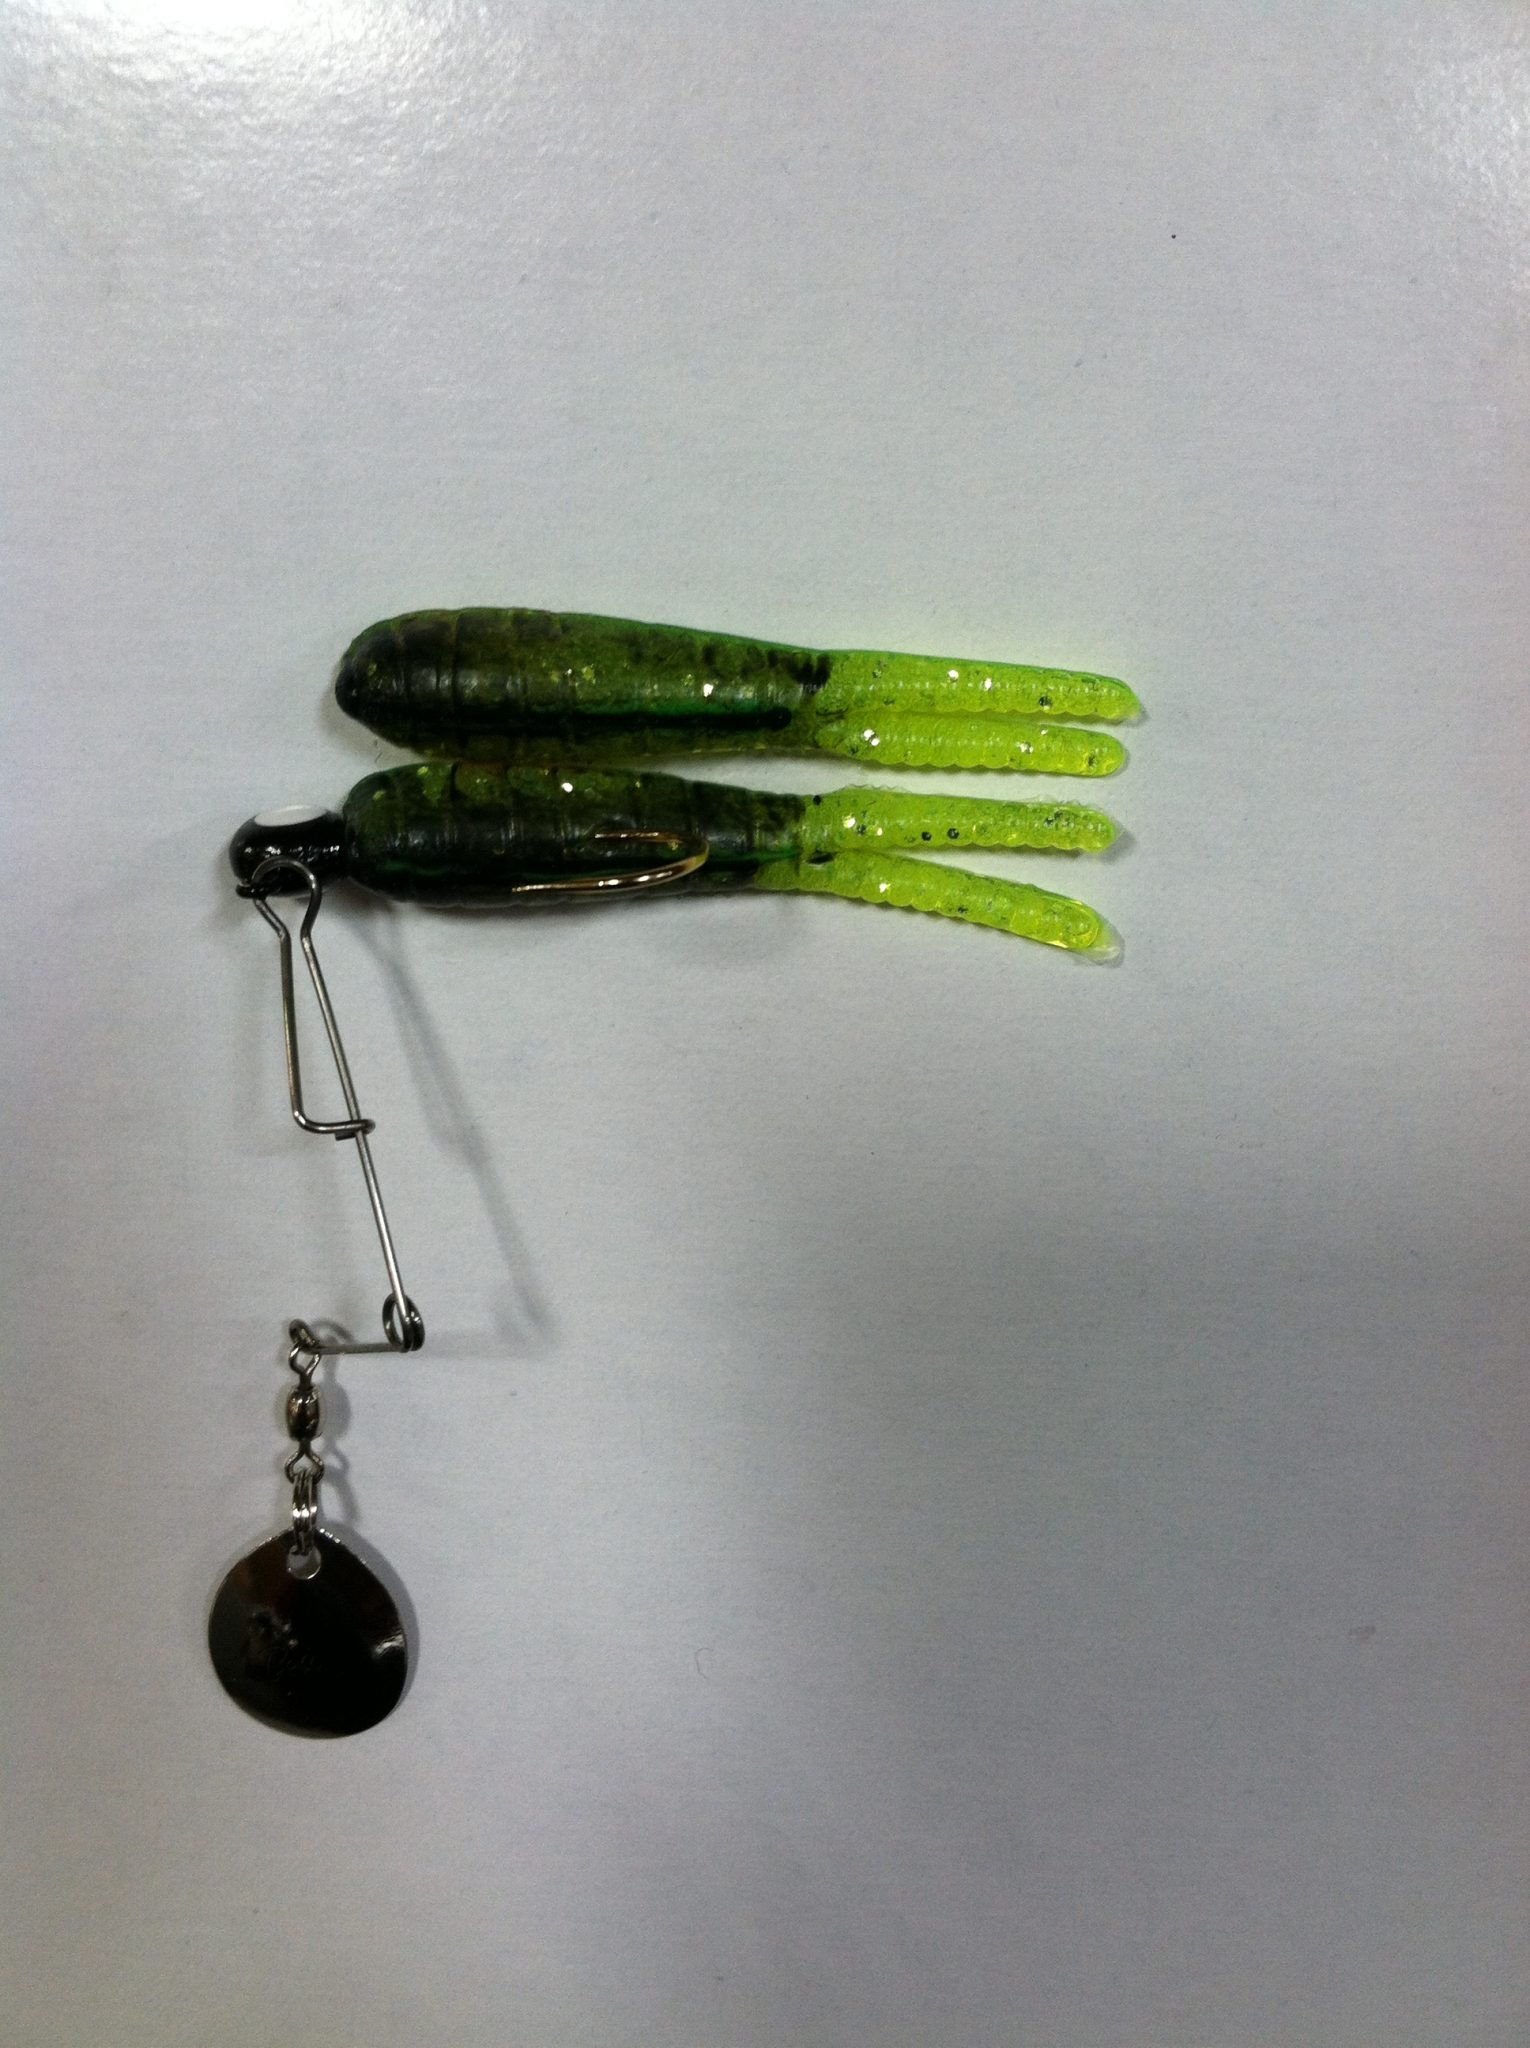 betts split tail spin 1/8 oz. w/ extra bait